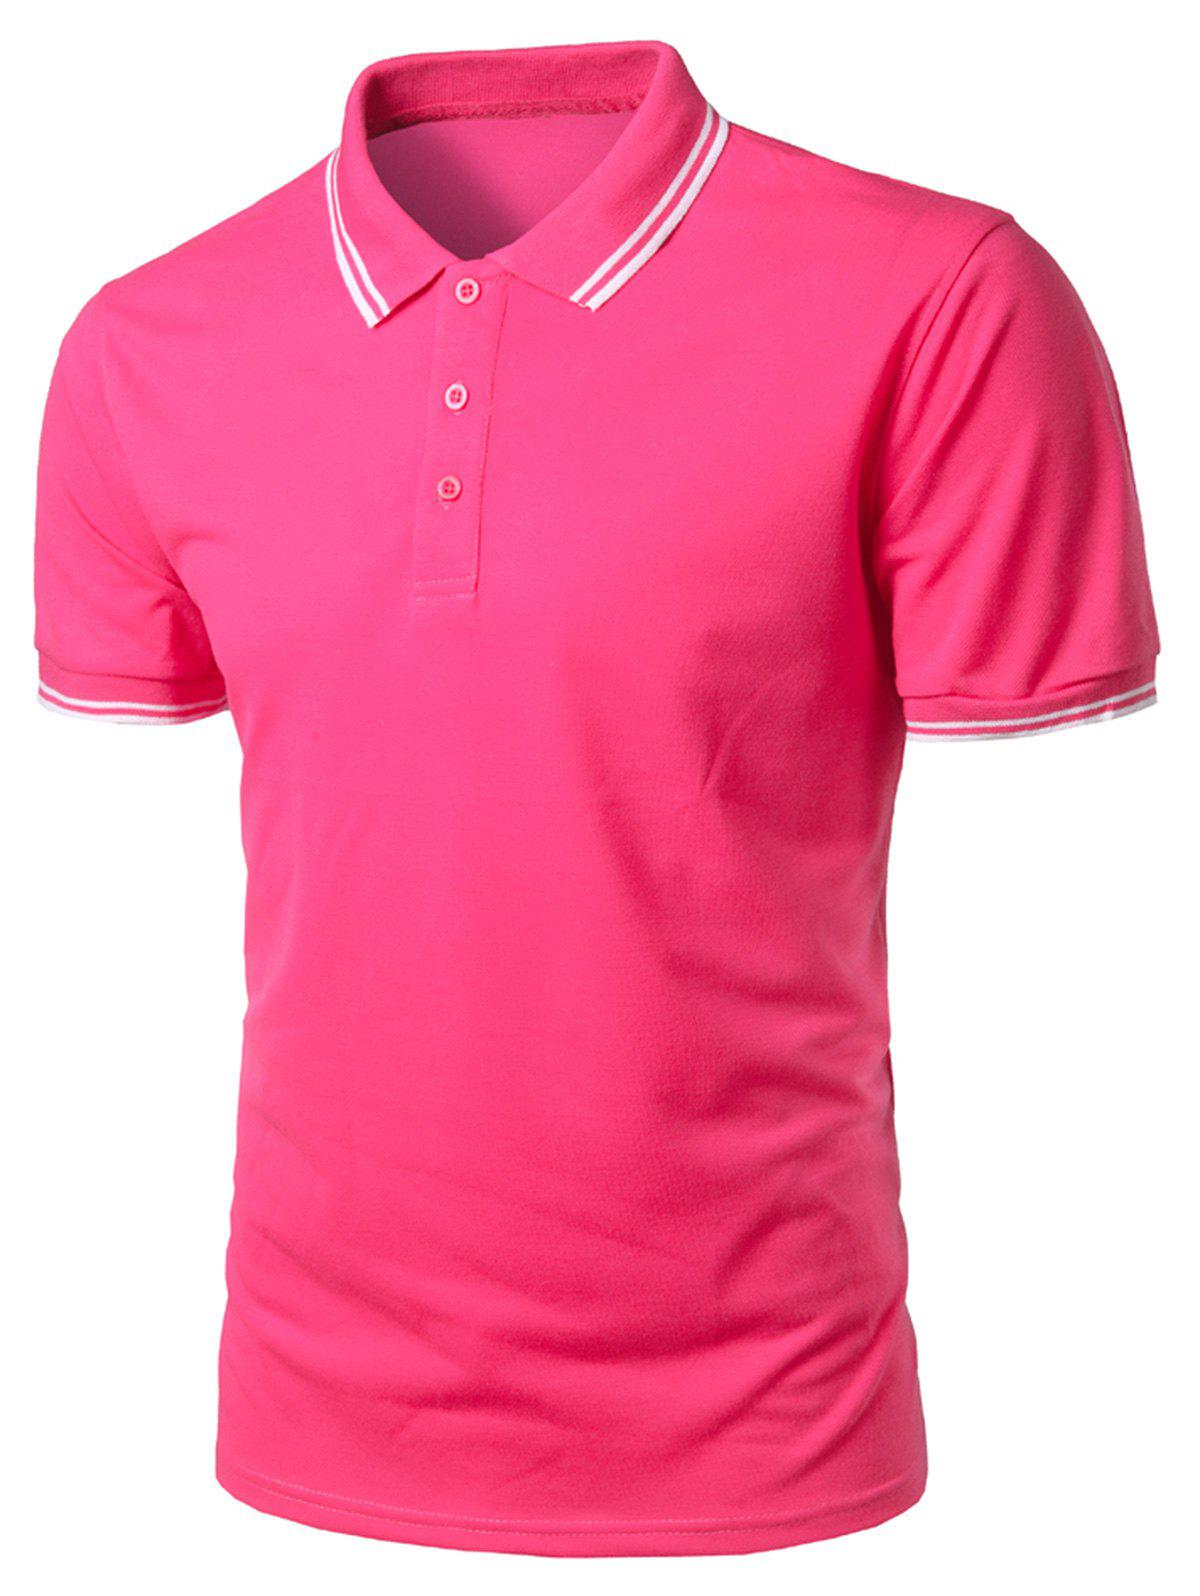 Short Sleeve Half Button Polo Shirt - PINK LEMONADE 3XL